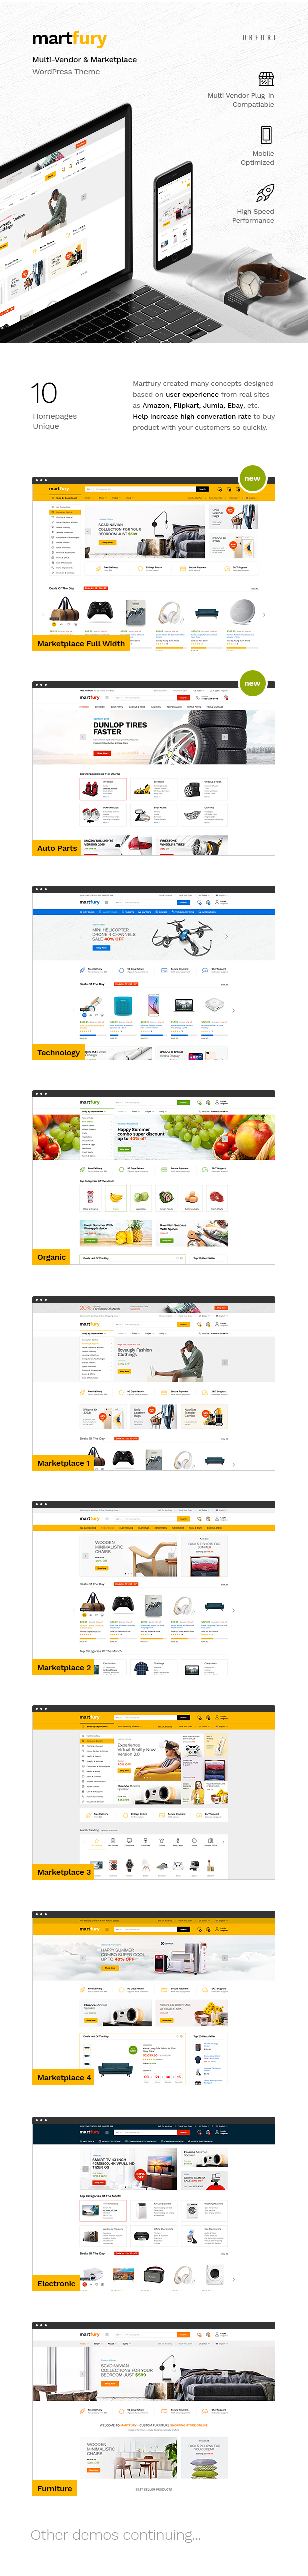 Martfury - WooCommerce Marketplace WordPress Theme - 15